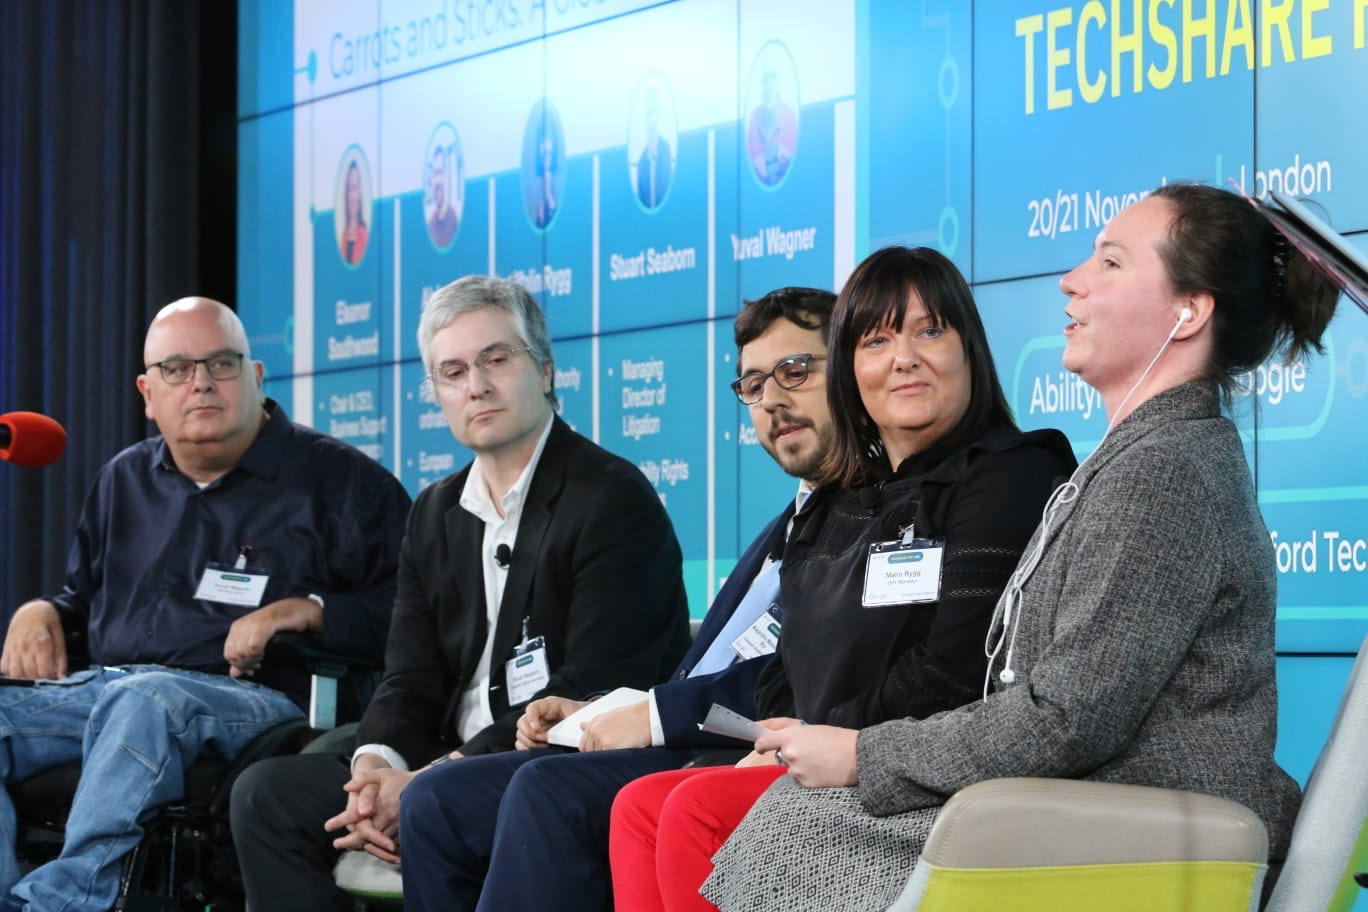 Panelists on stage at TechShare Pro, giving a global perspective on accessibility